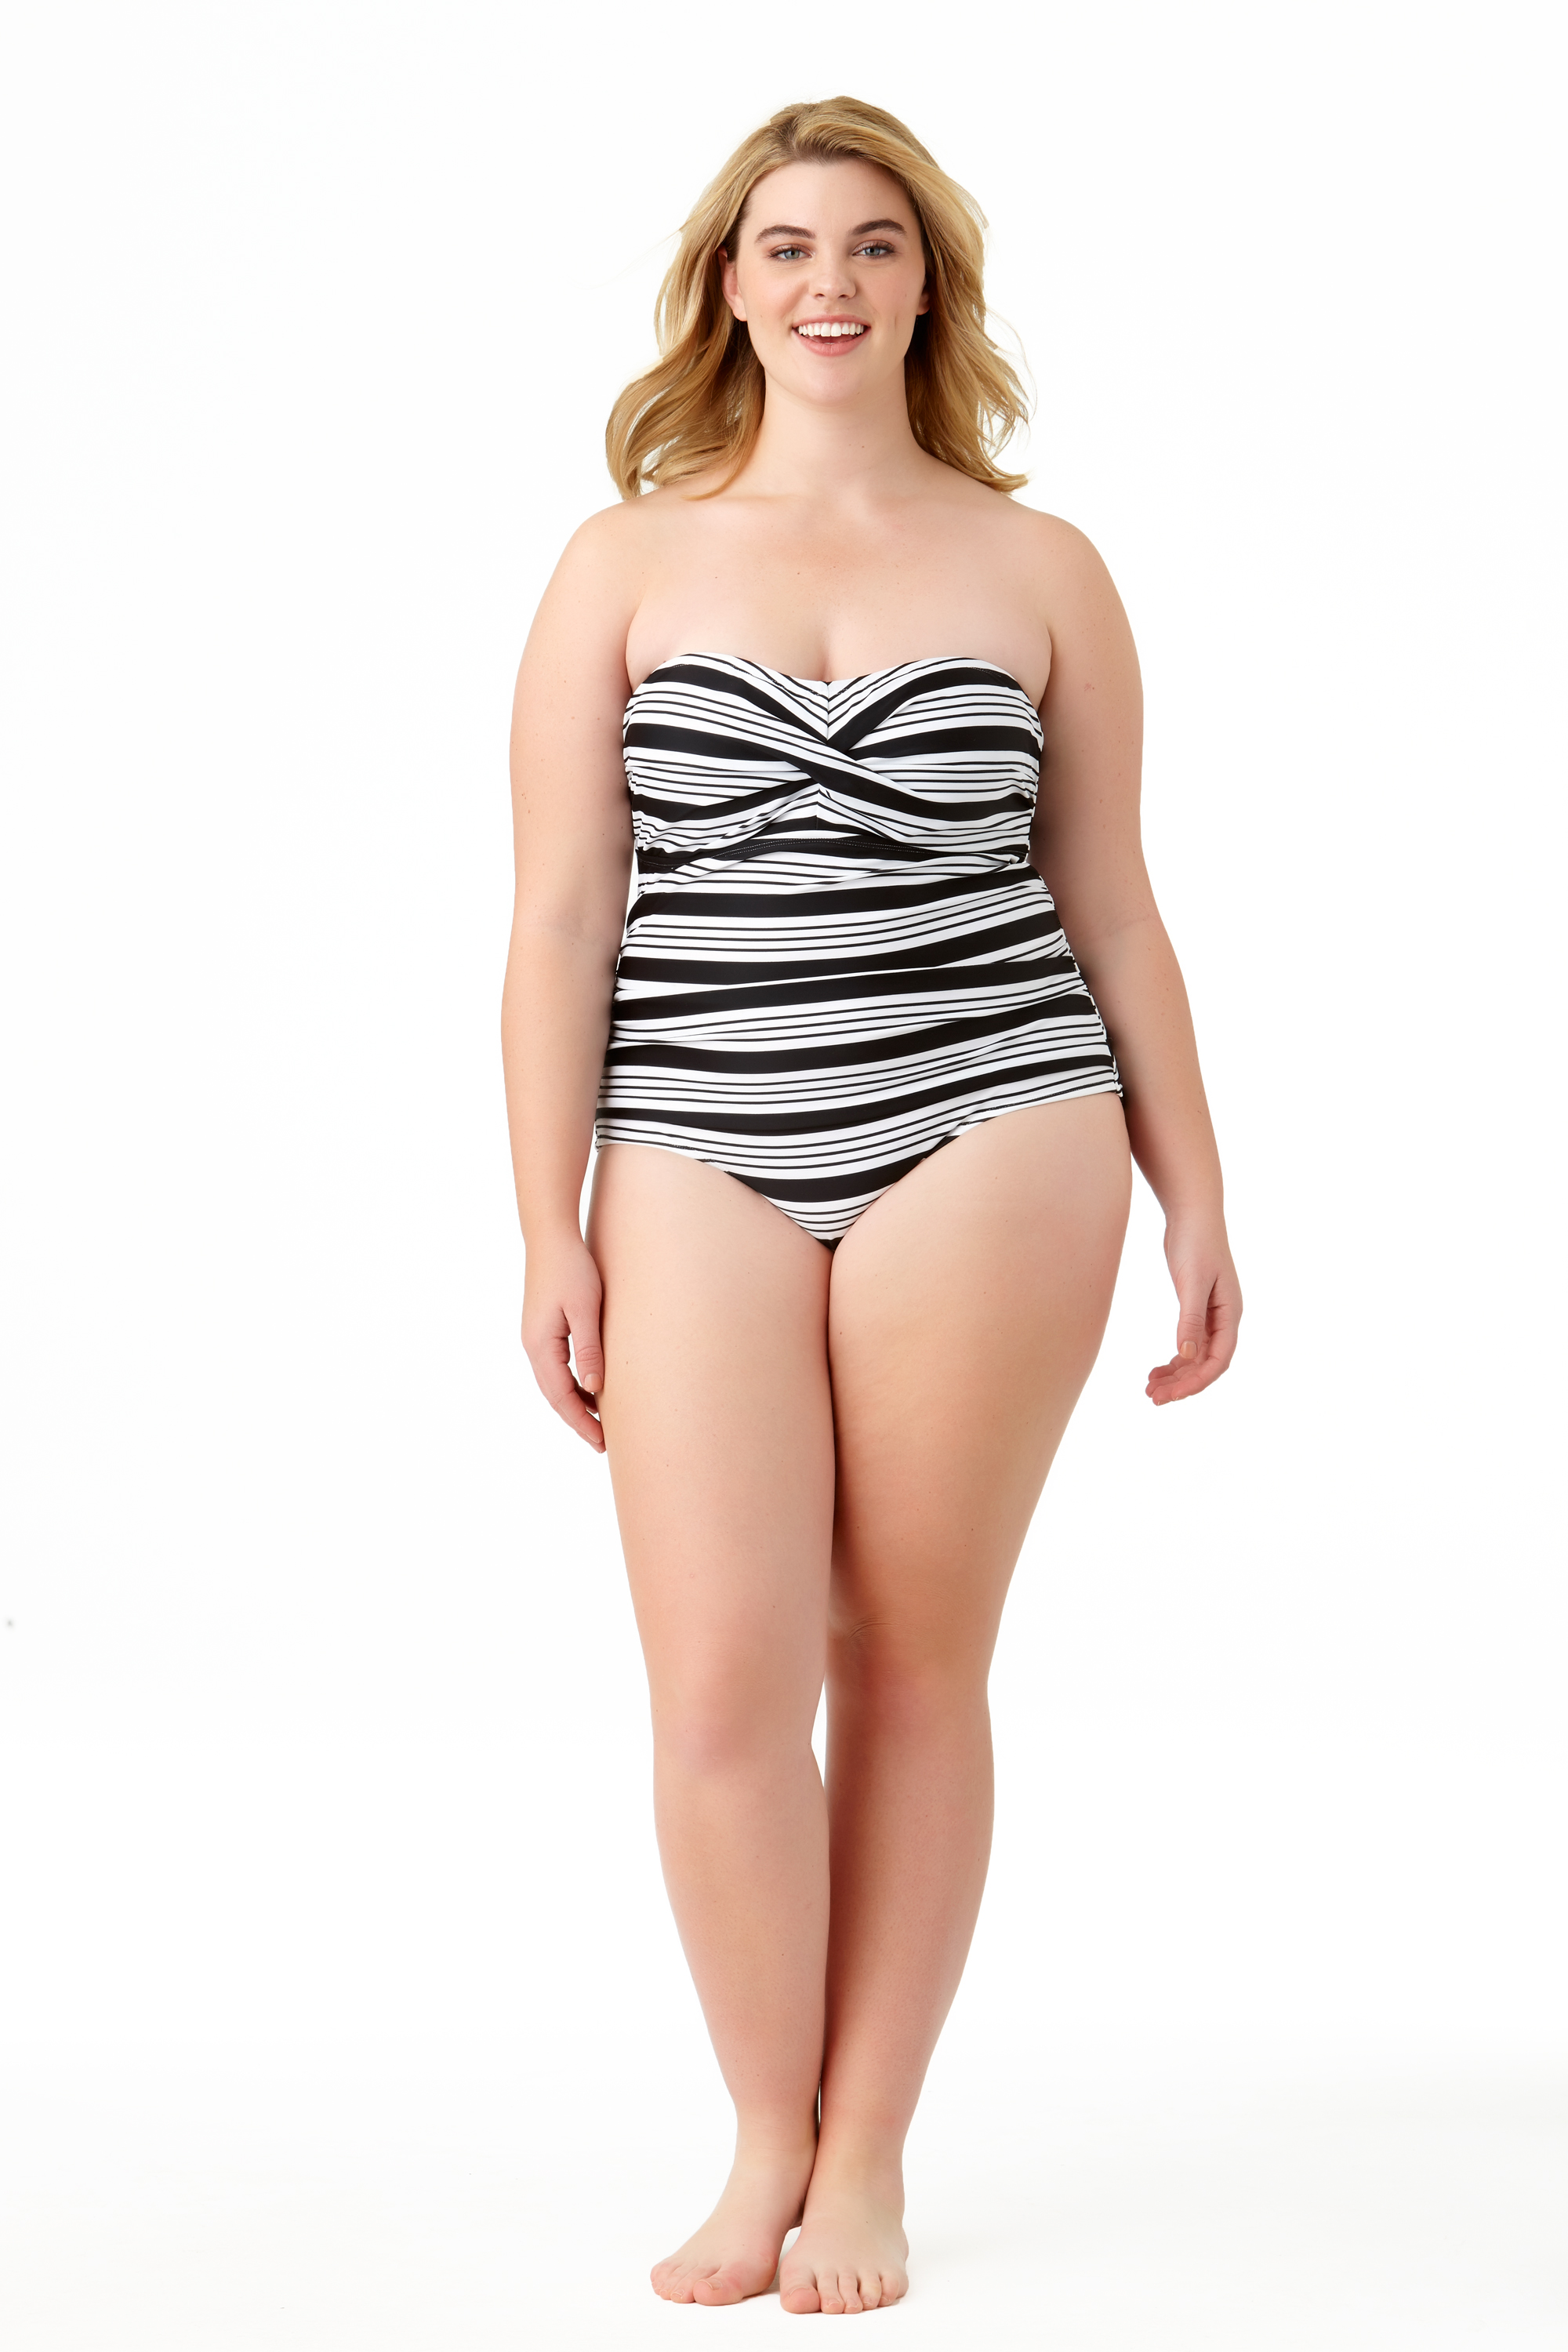 STYLE #CTP27101 - Melbourne Stripe One PieceSOLD OUT